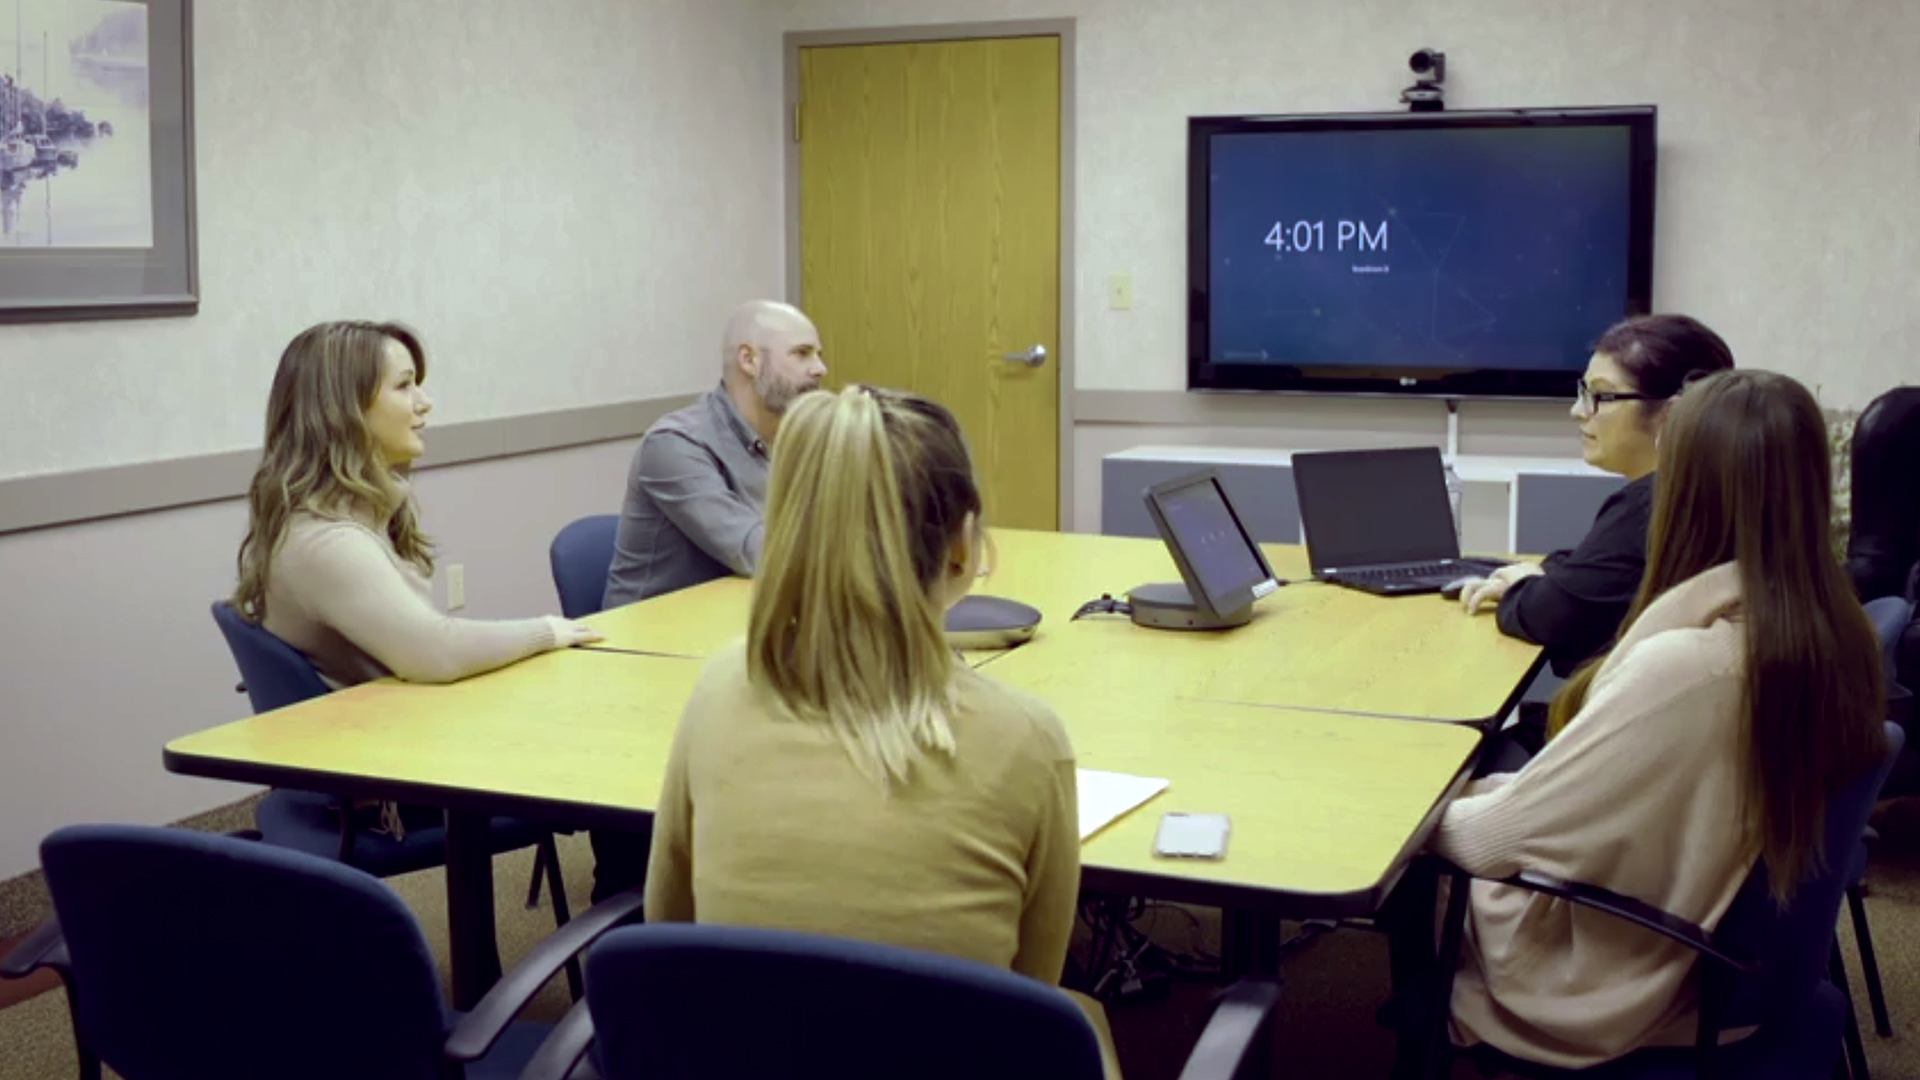 WATCH HOW 700 TEAM MEMBERS STREAMLINED COLLABORATION WITH SMARTDOCK